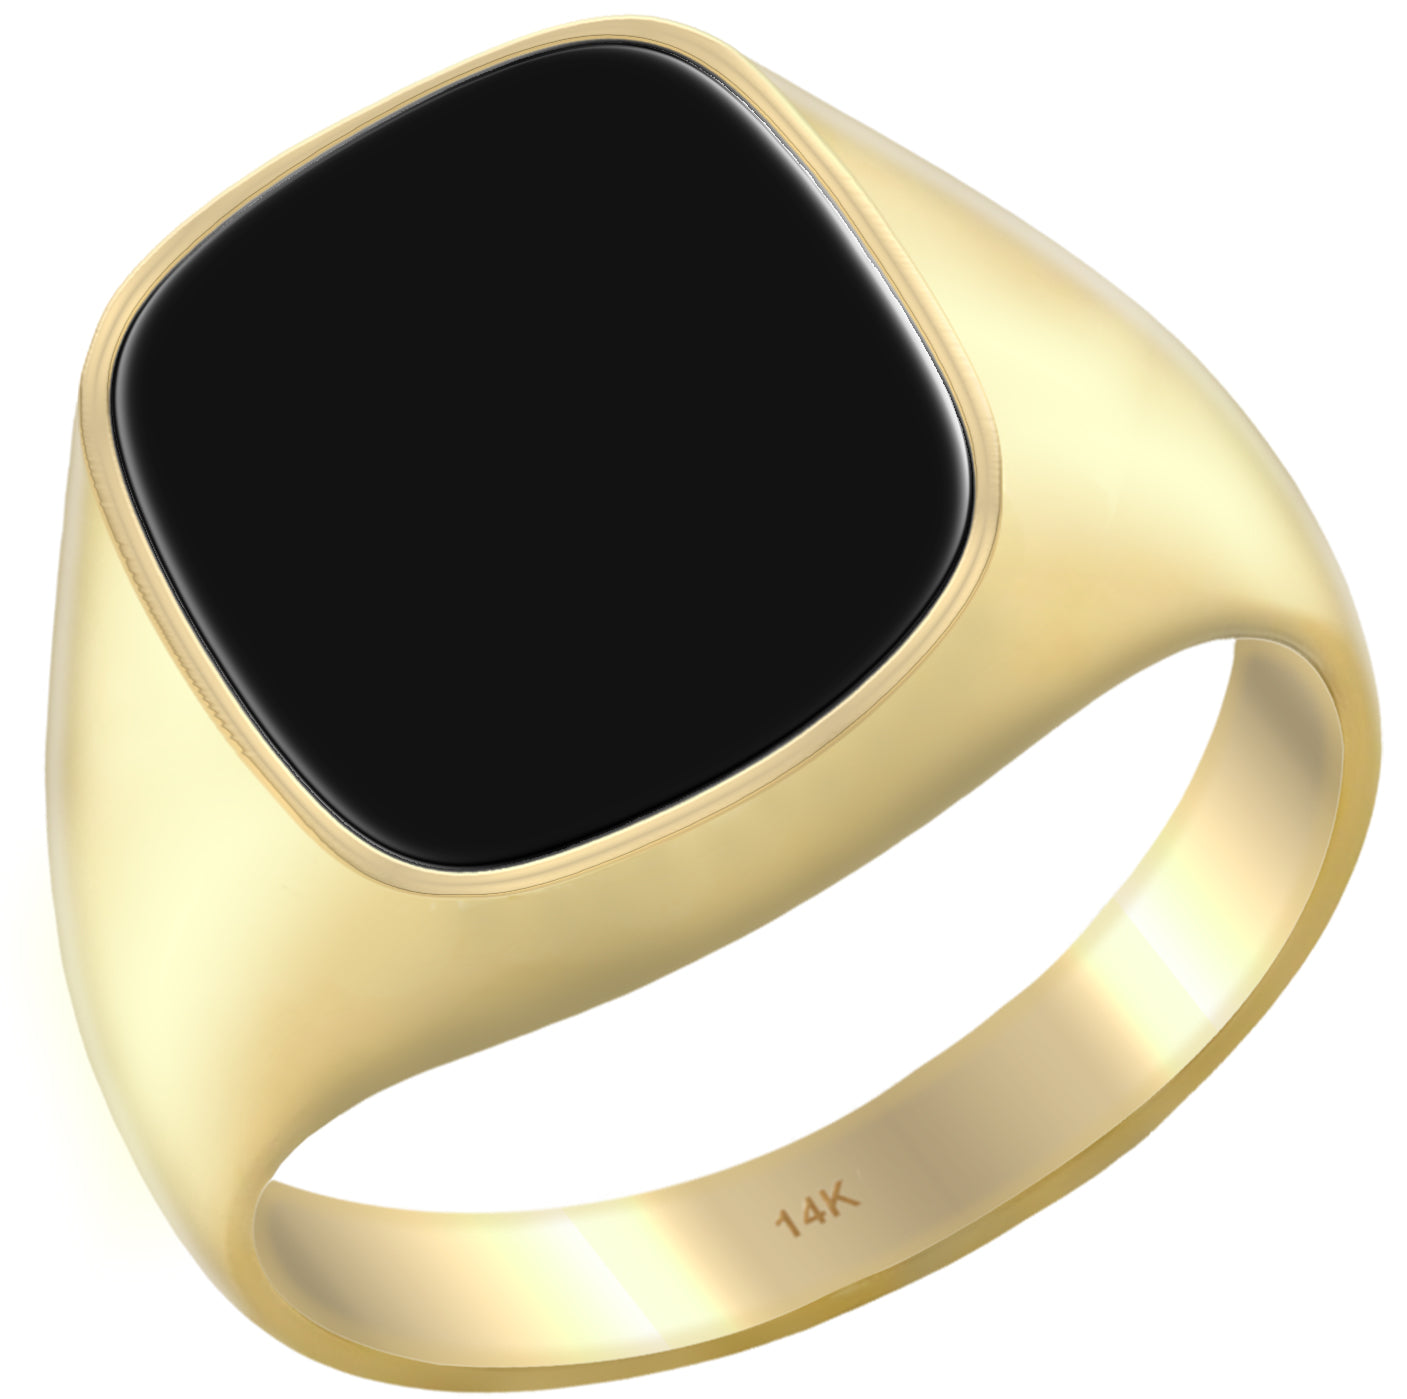 Men's 14k Yellow Gold Onyx Genuine Black Gemstone Ring